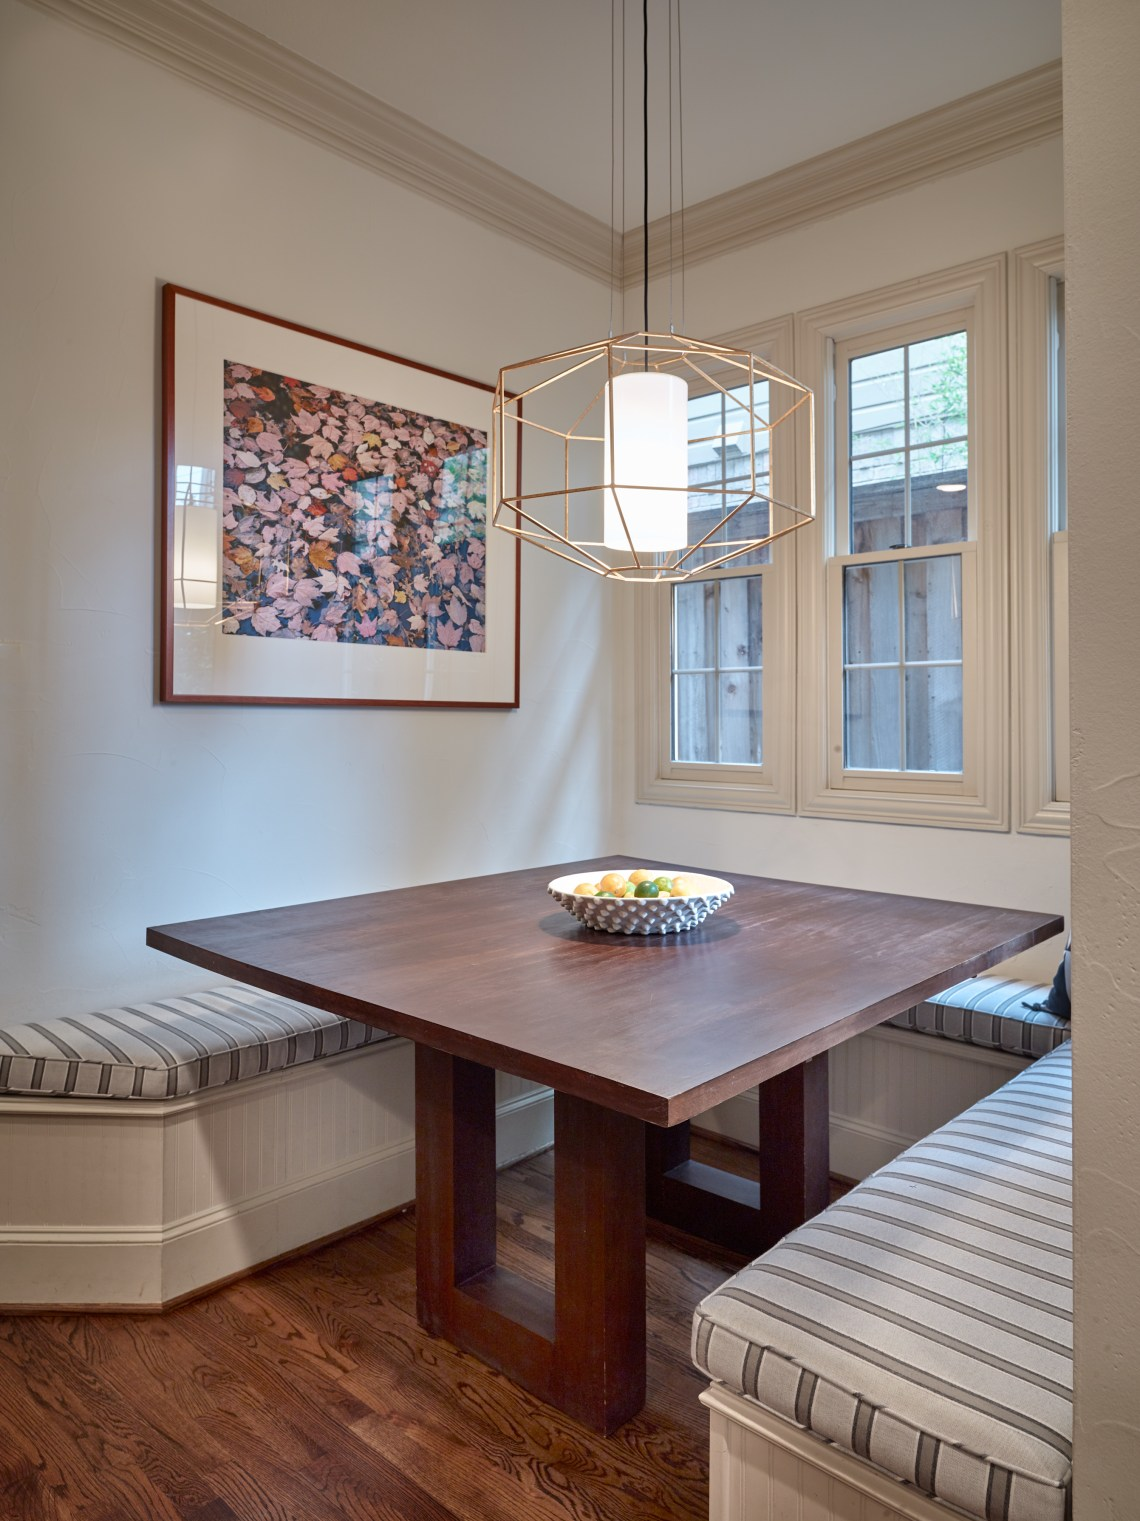 Breakfast nook with striped banquette seating and brass pendant